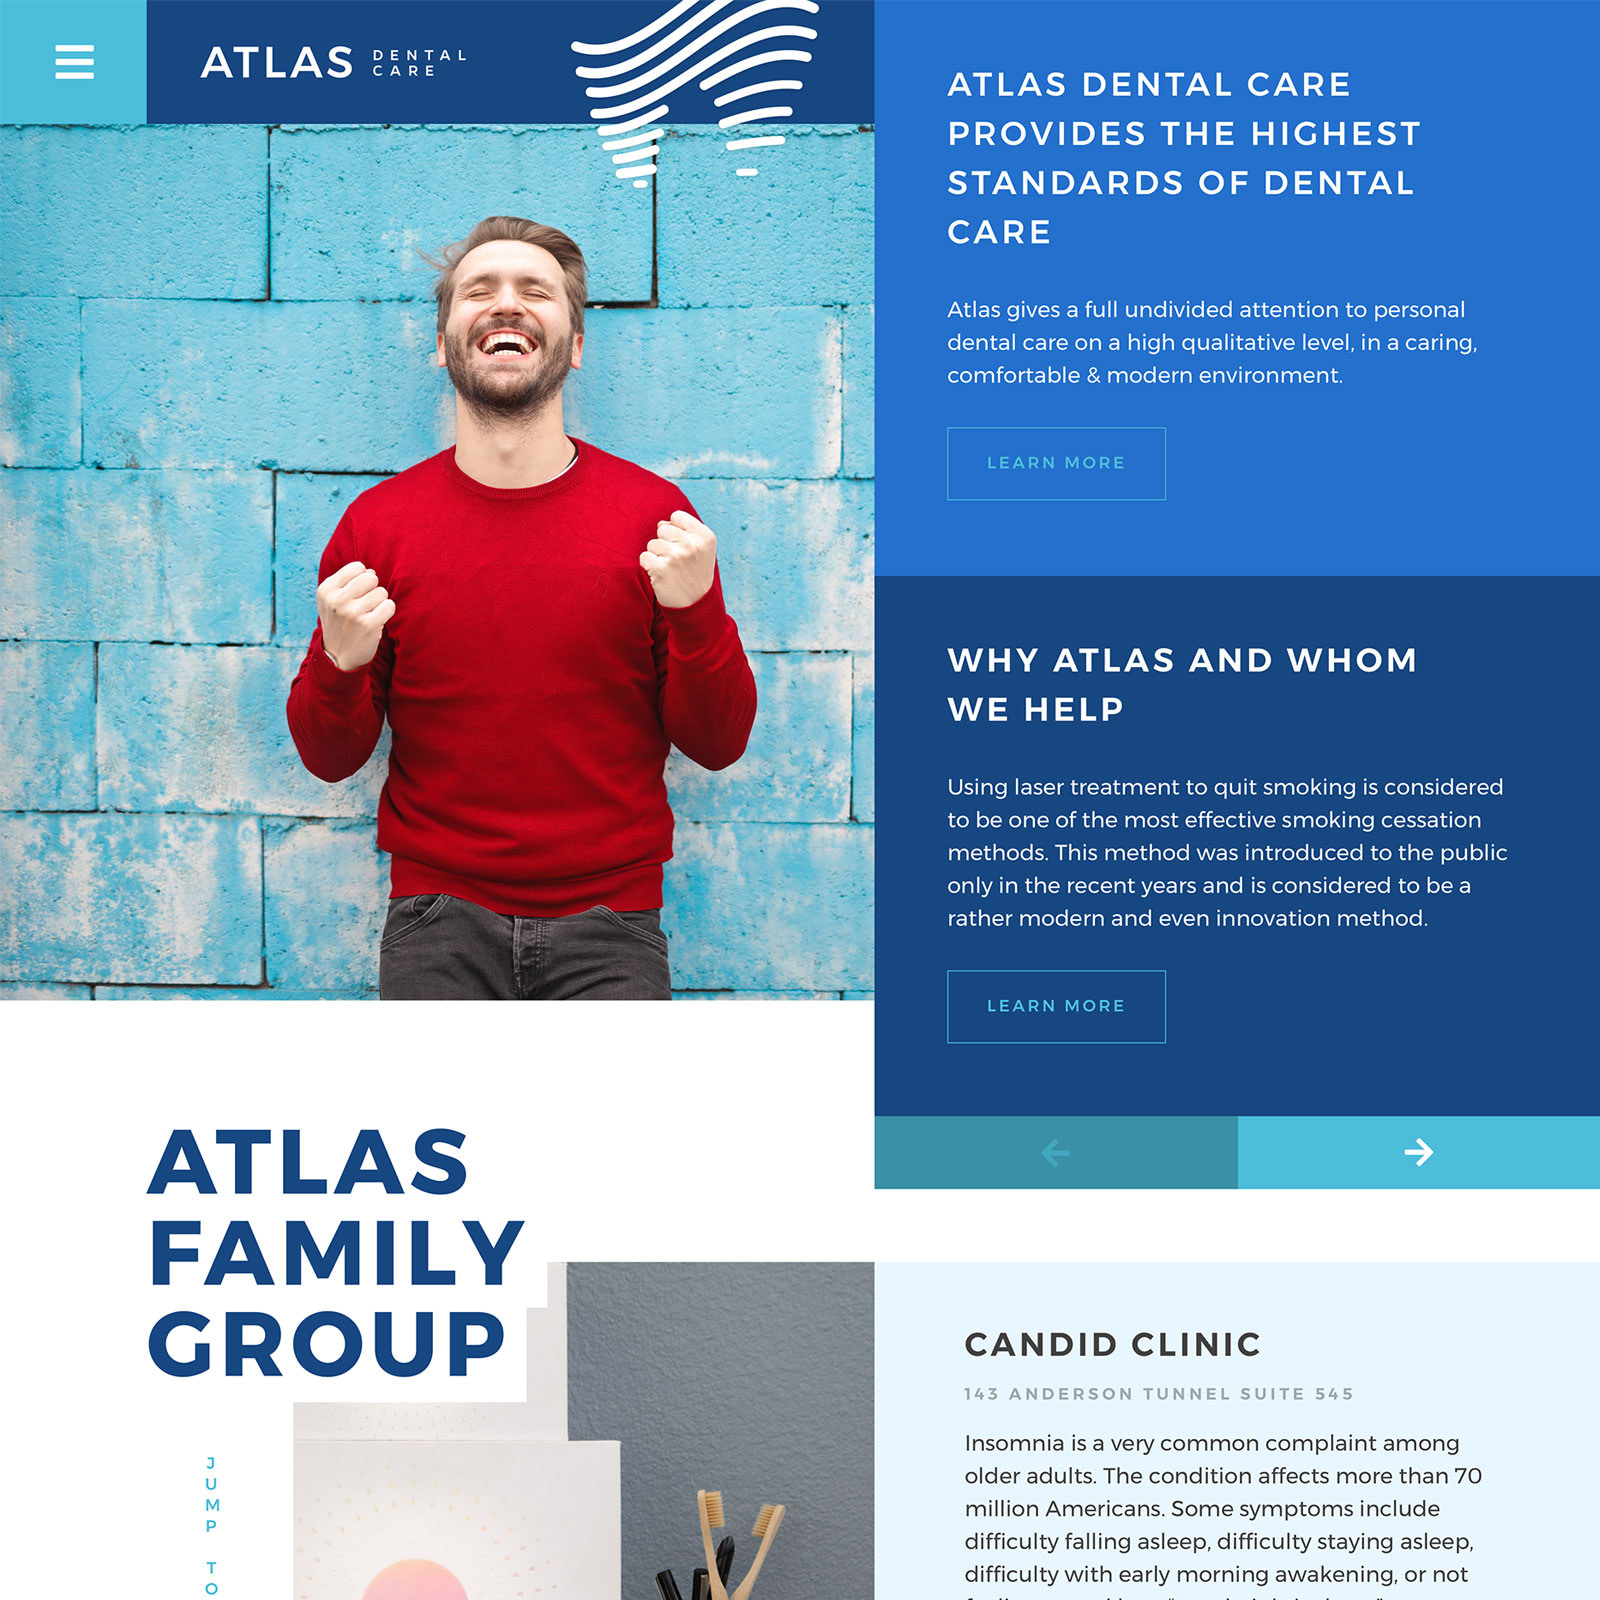 Dental acquiring company web design concept/proposal